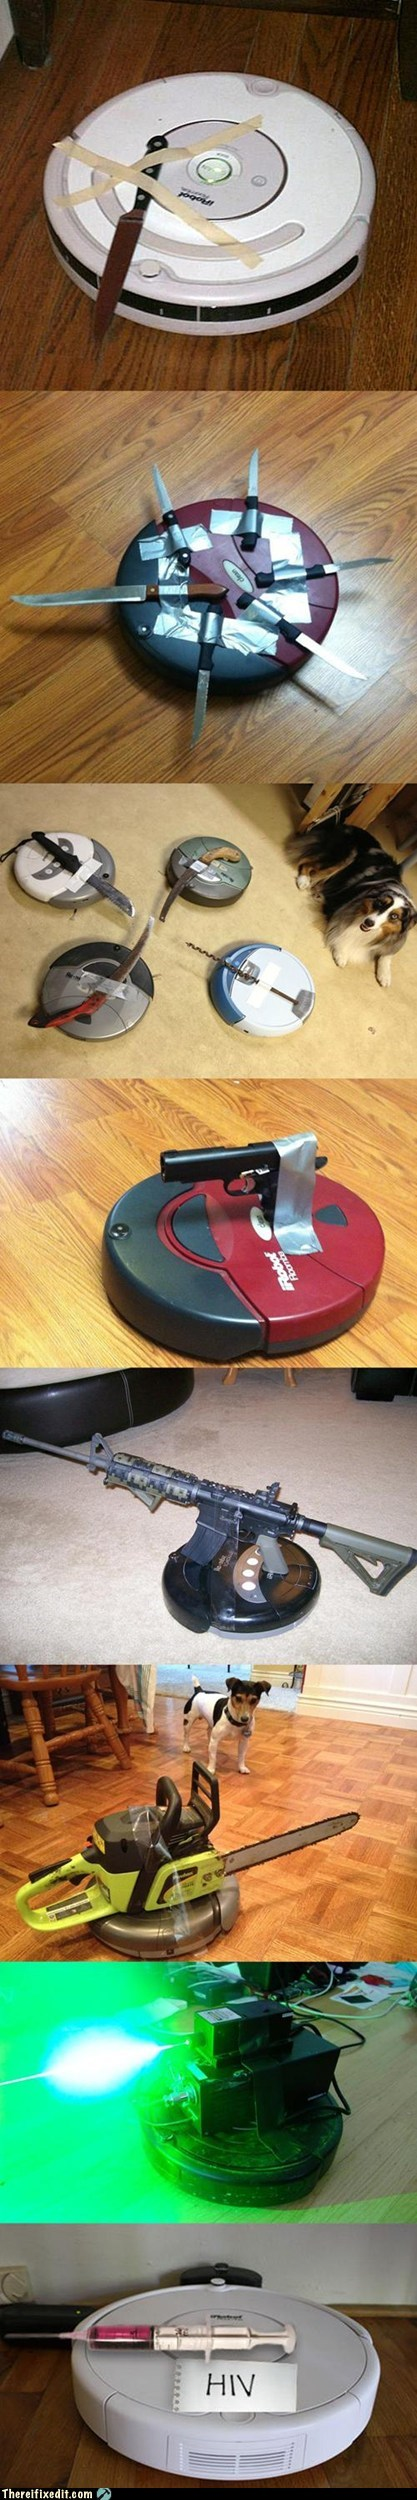 gun roomba there I fixed it - 6513993216